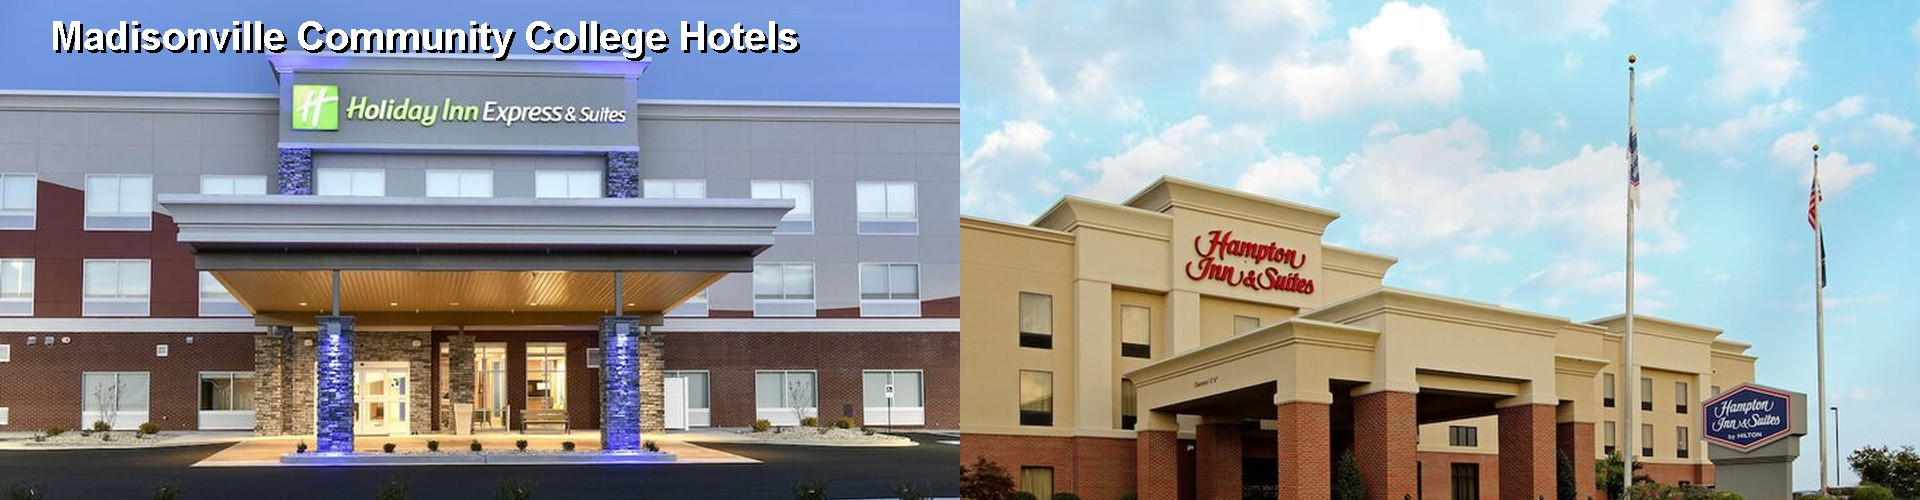 5 Best Hotels near Madisonville Community College